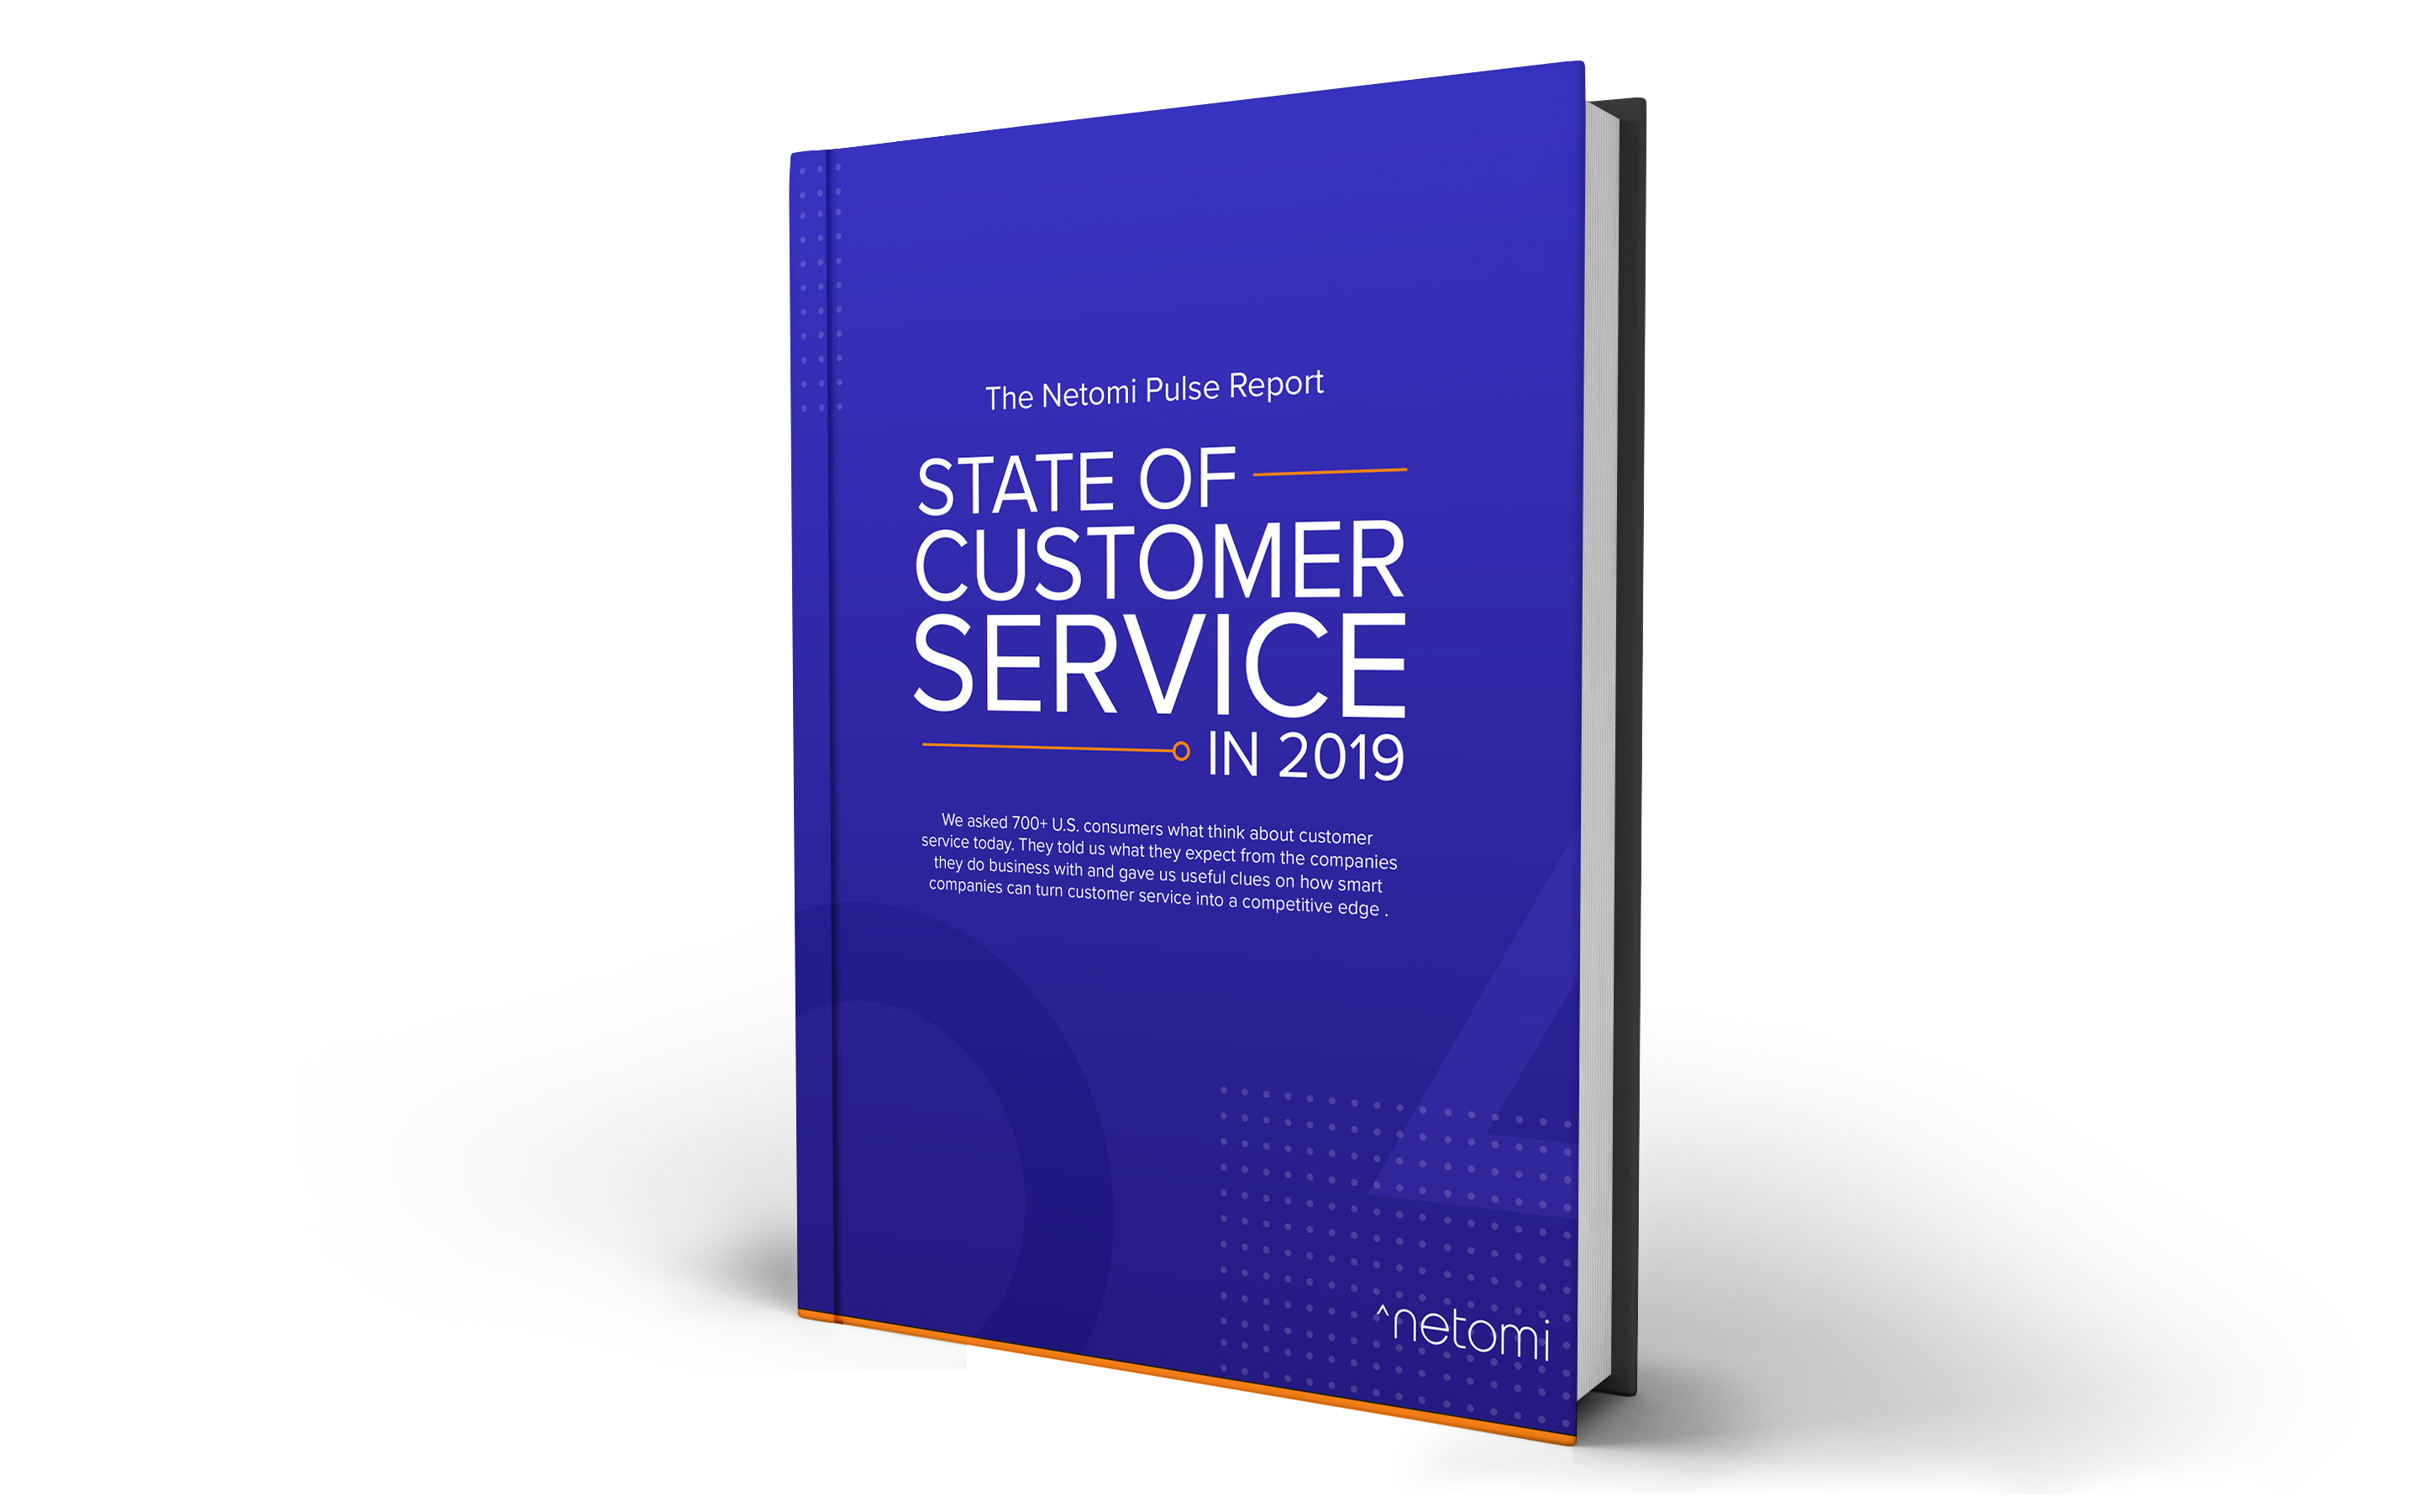 Customer service trends and stats